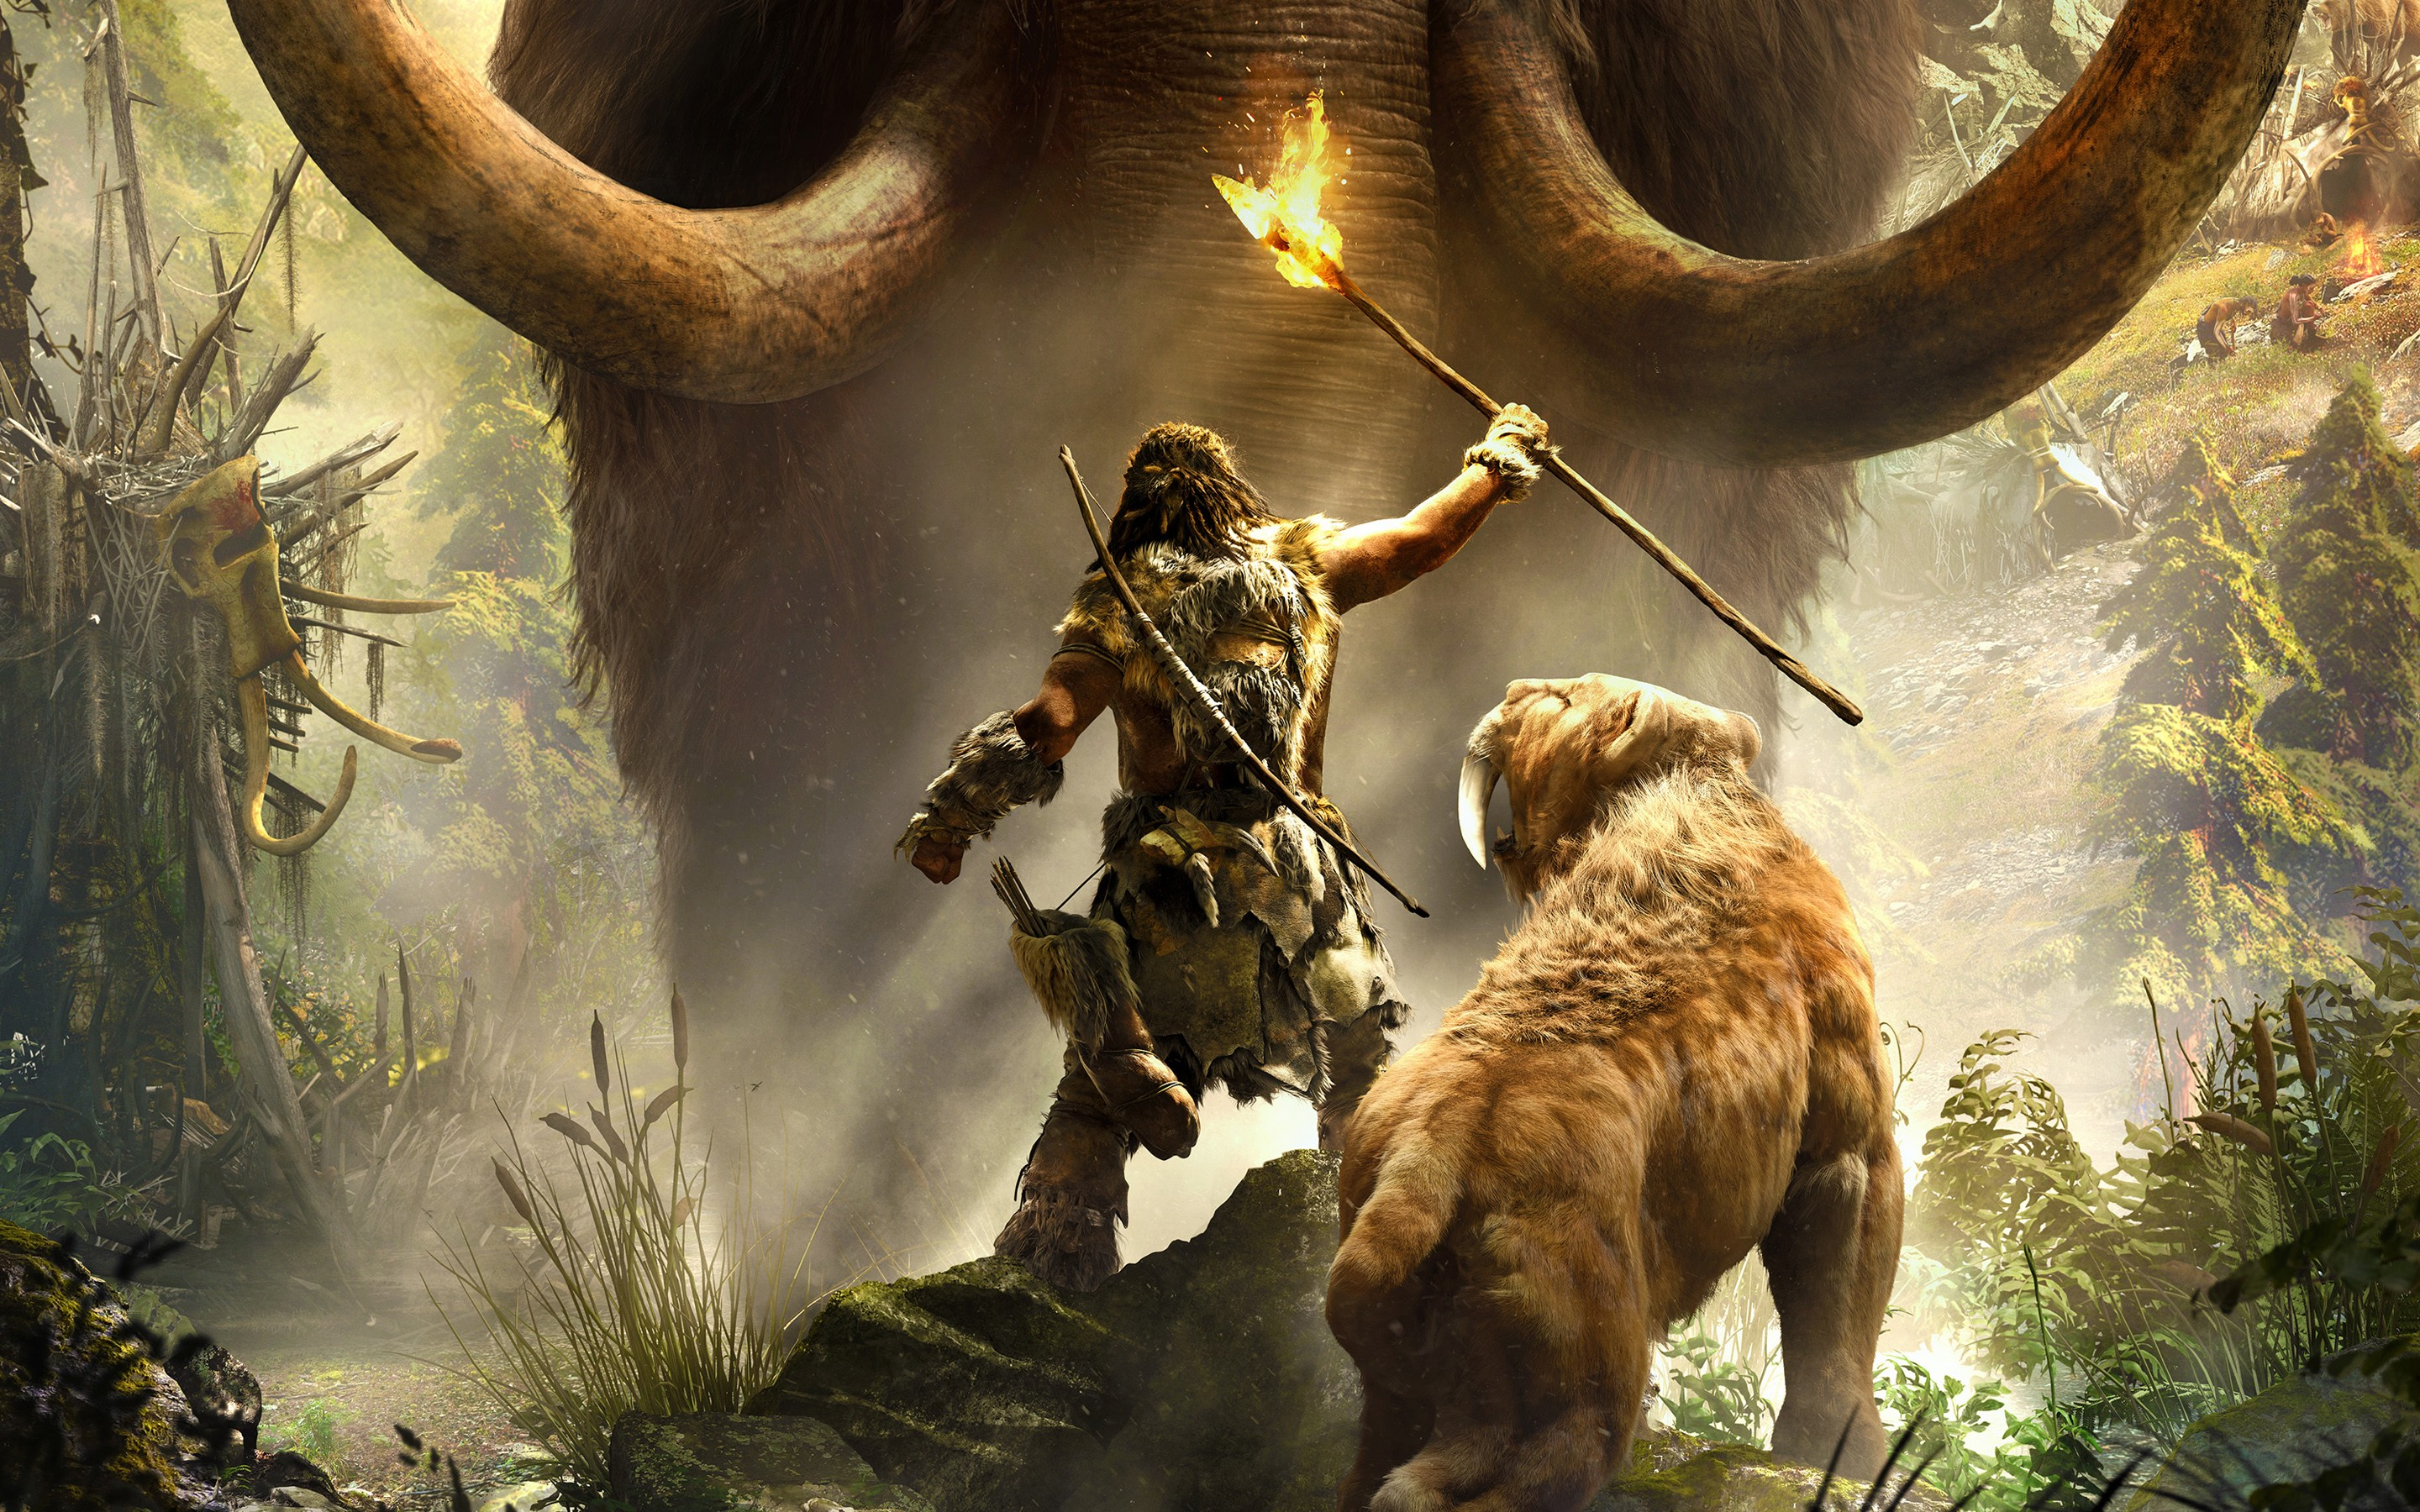 Far Cry Primal Artwork Video Games Wallpapers Hd: HD Far Cry Primal Wallpaper